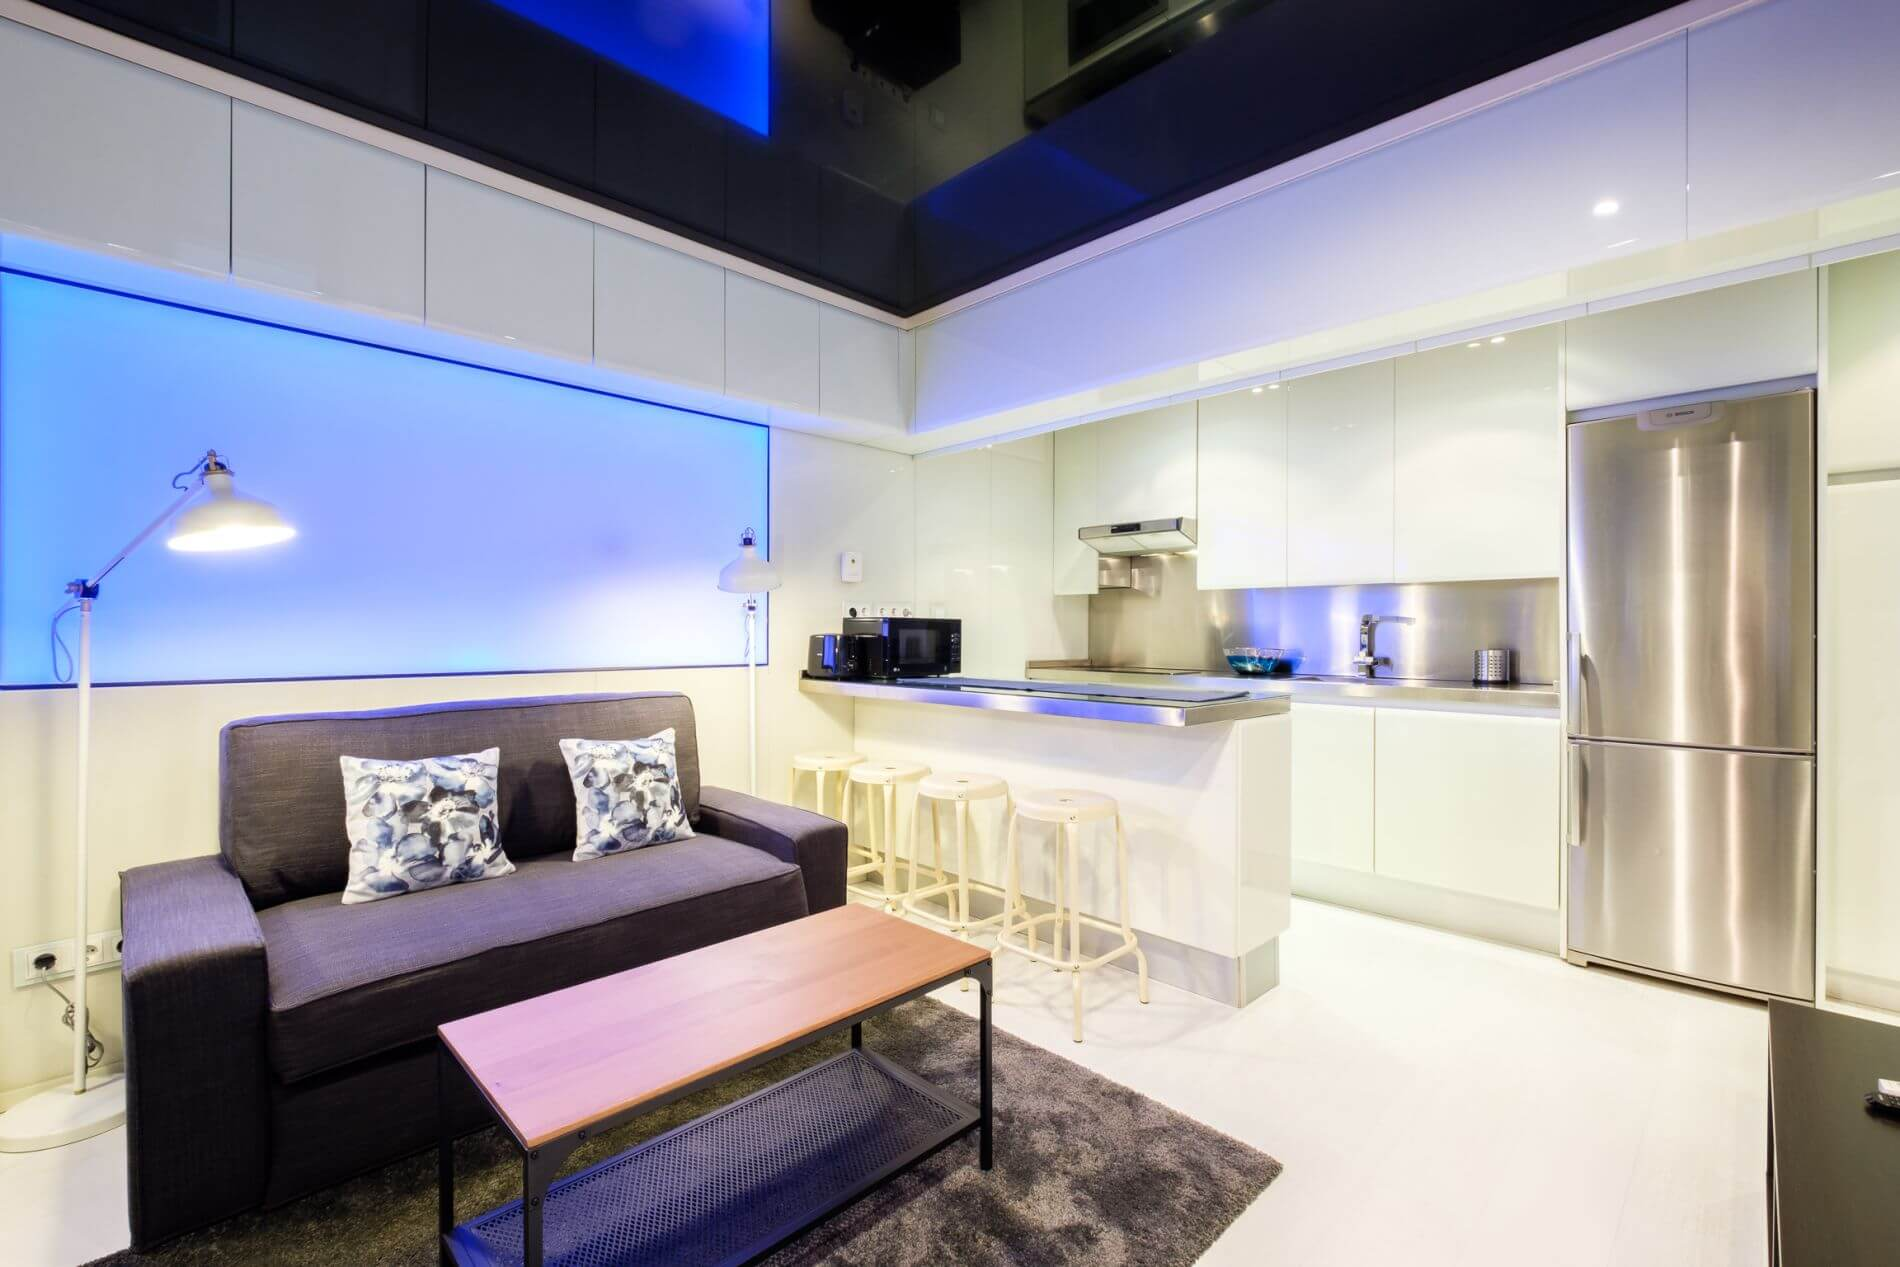 Duplex Serviced Apartment in Madrid that allows pets